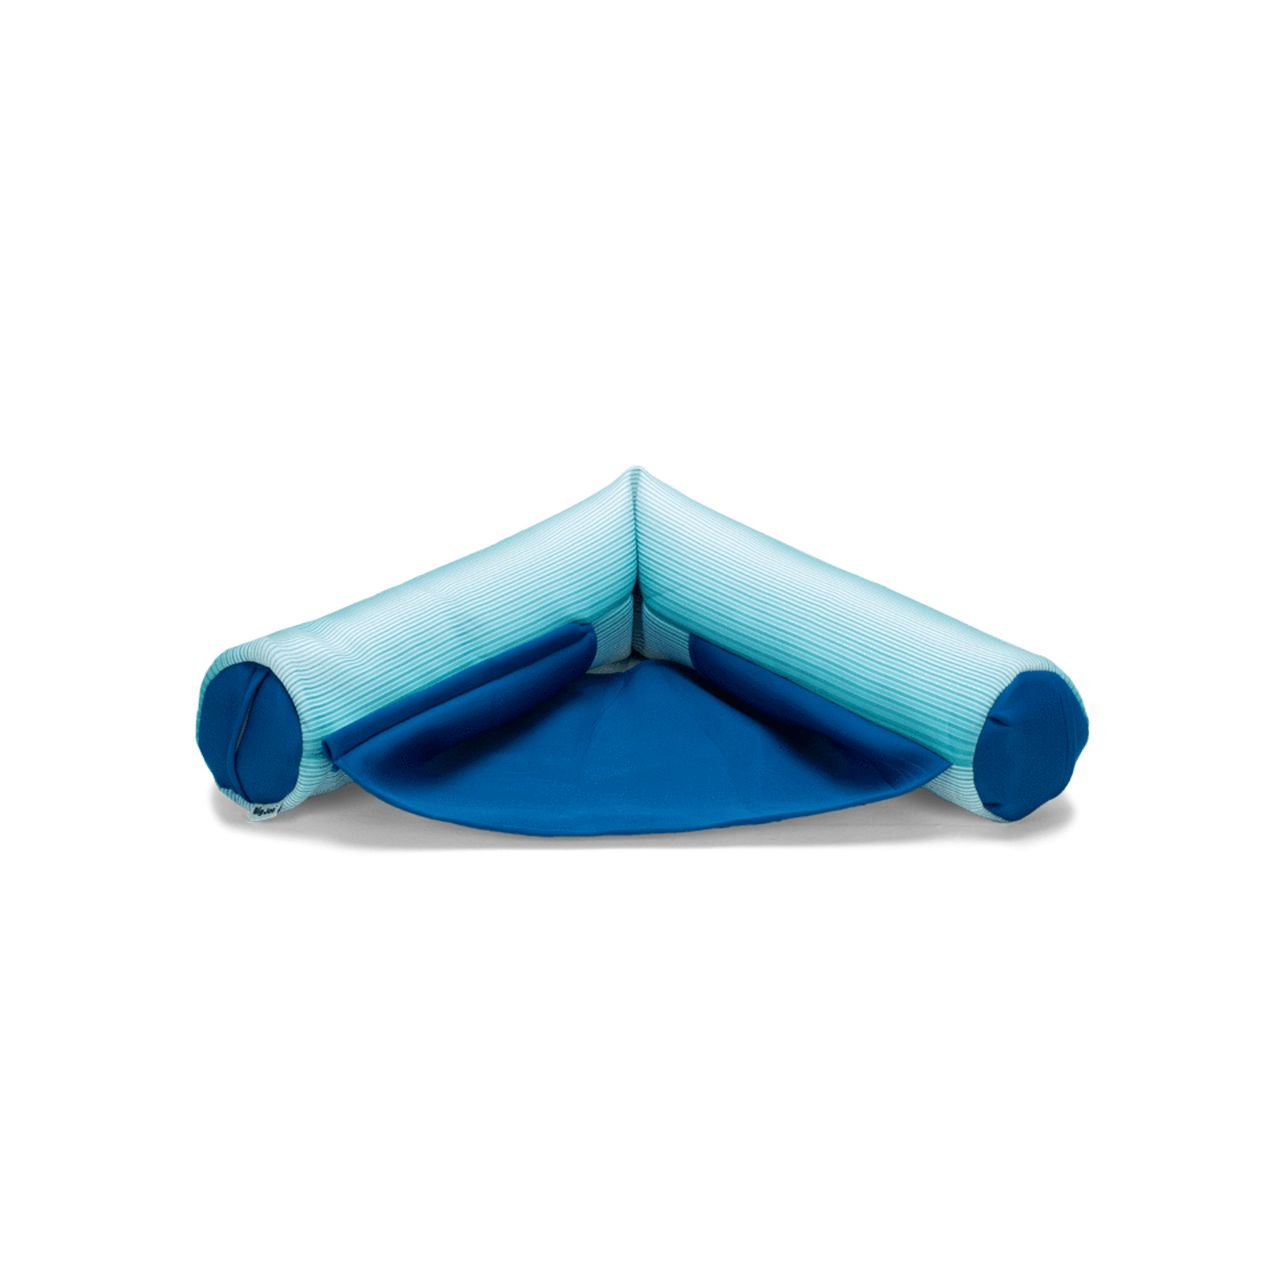 Big Joe Noodle Sling Pool Float - Fade Aqua